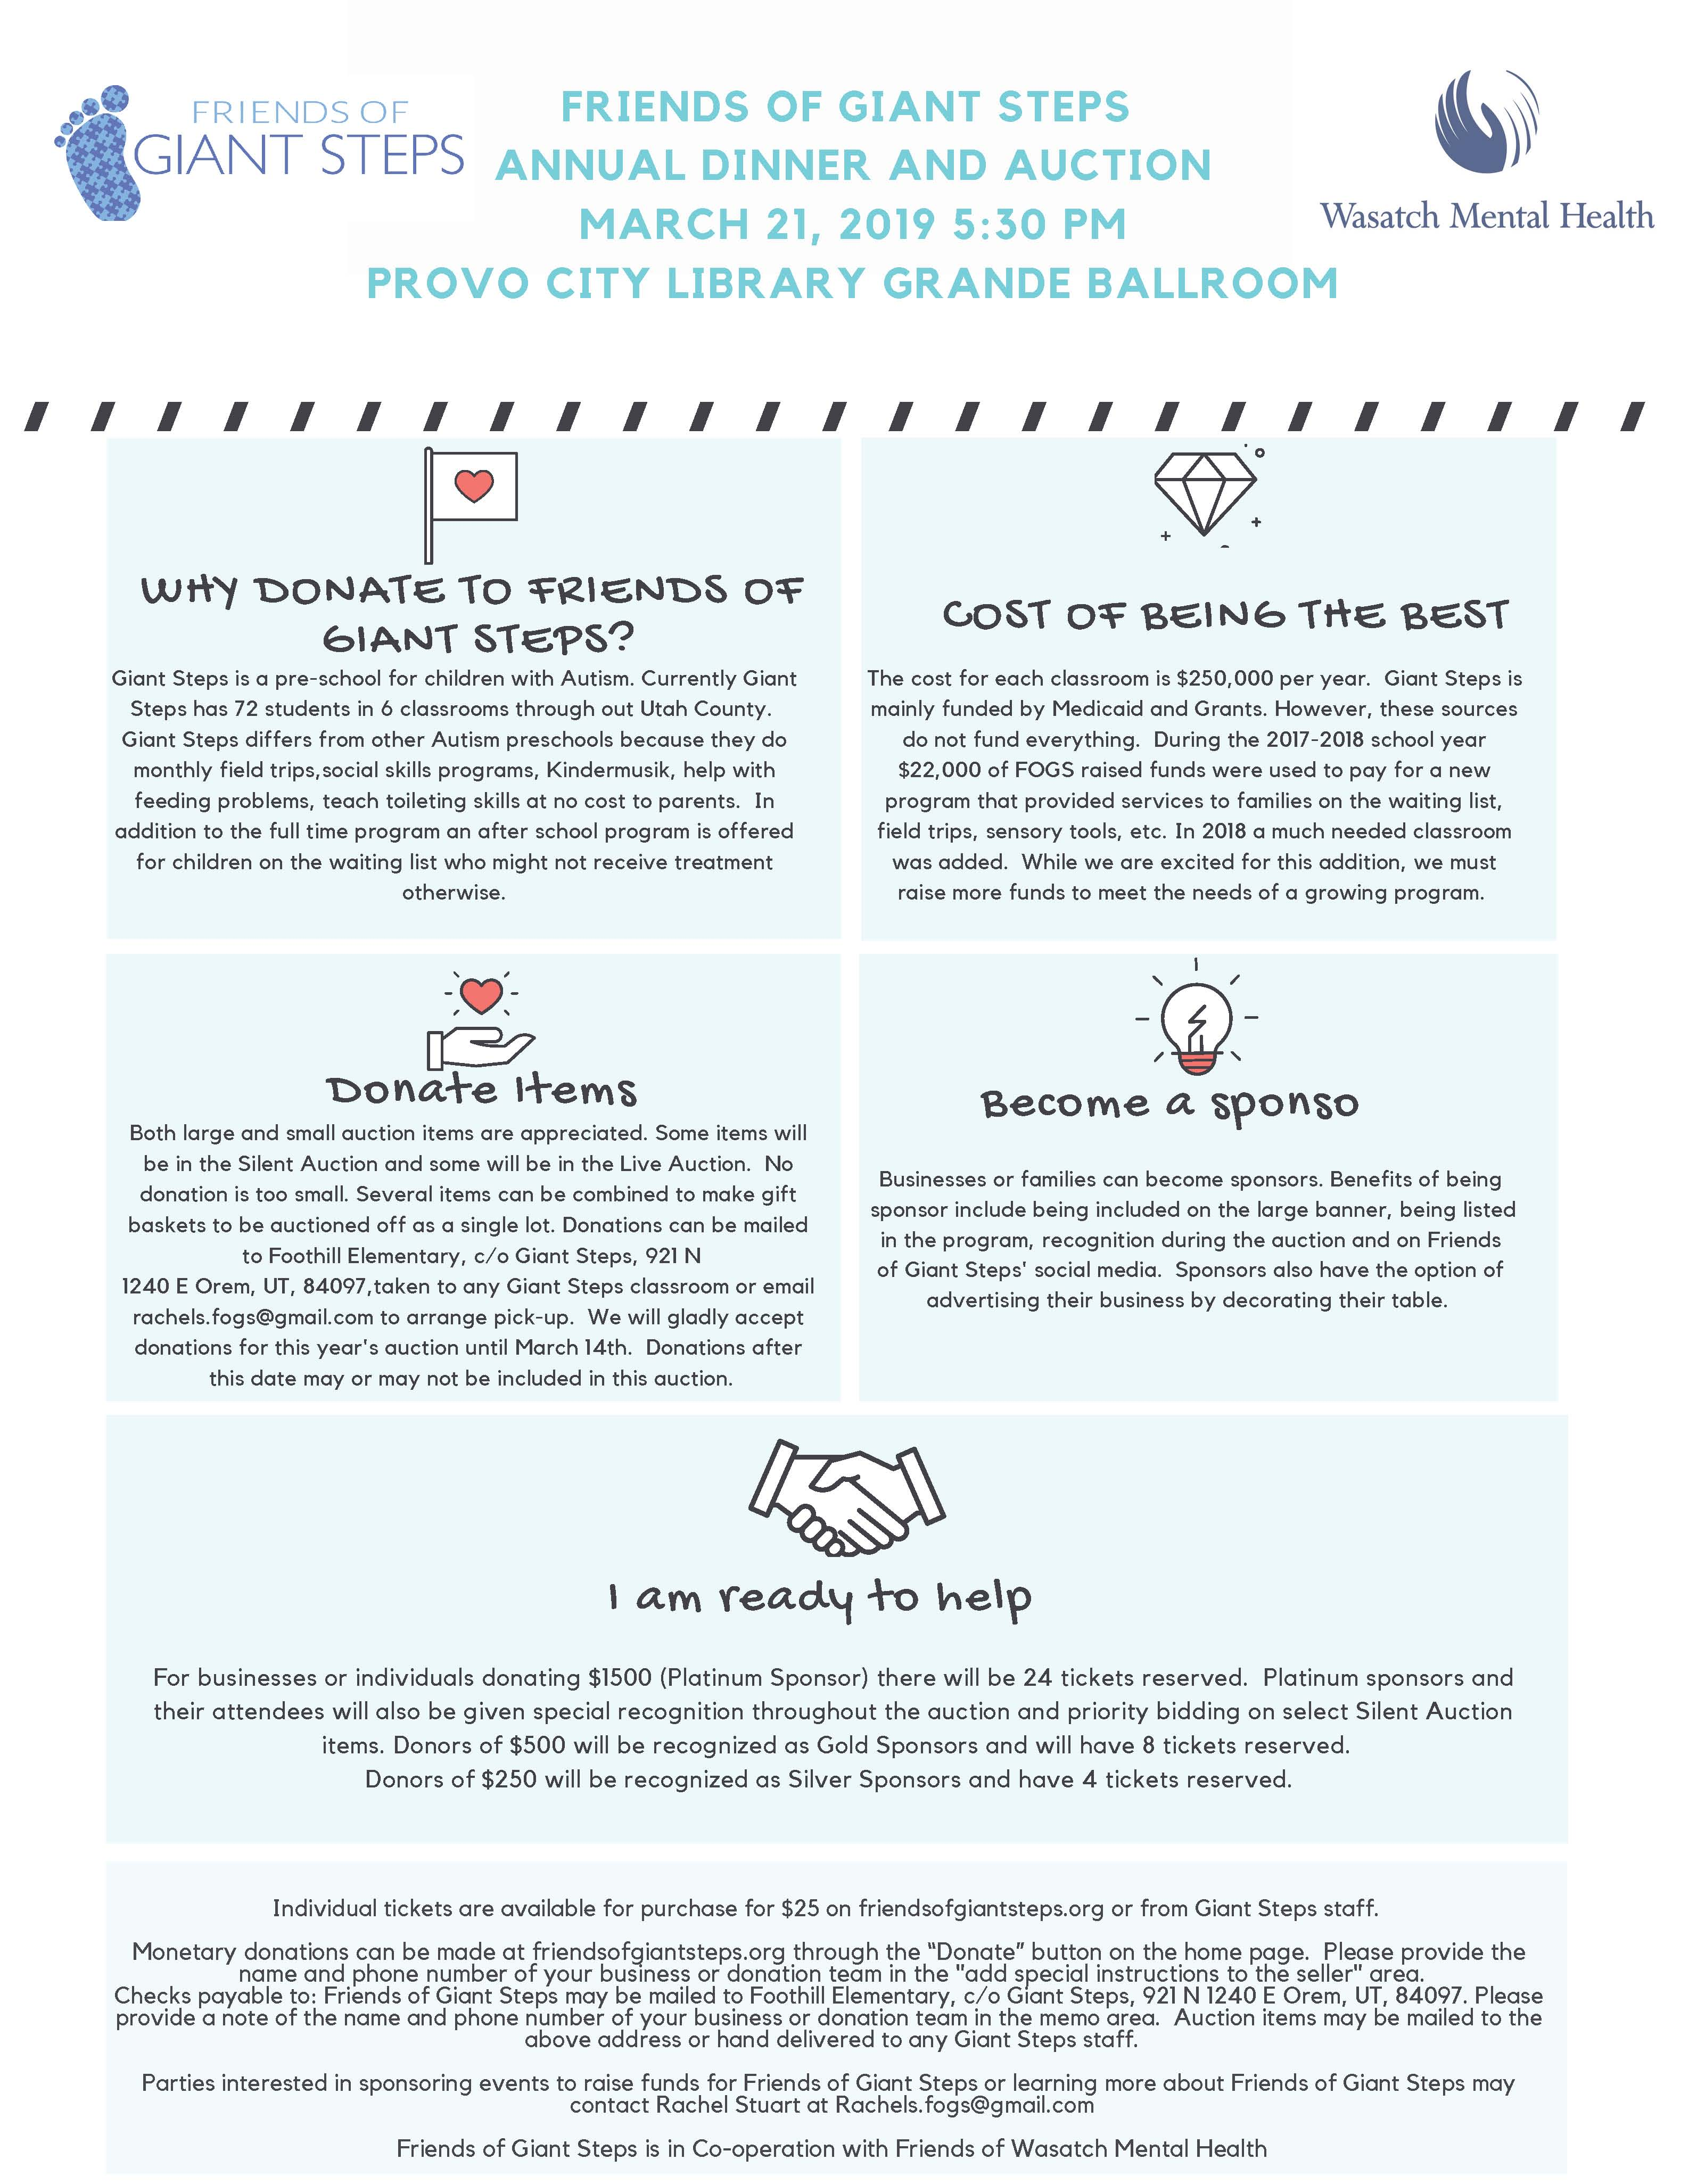 FOGS Infographic Poster